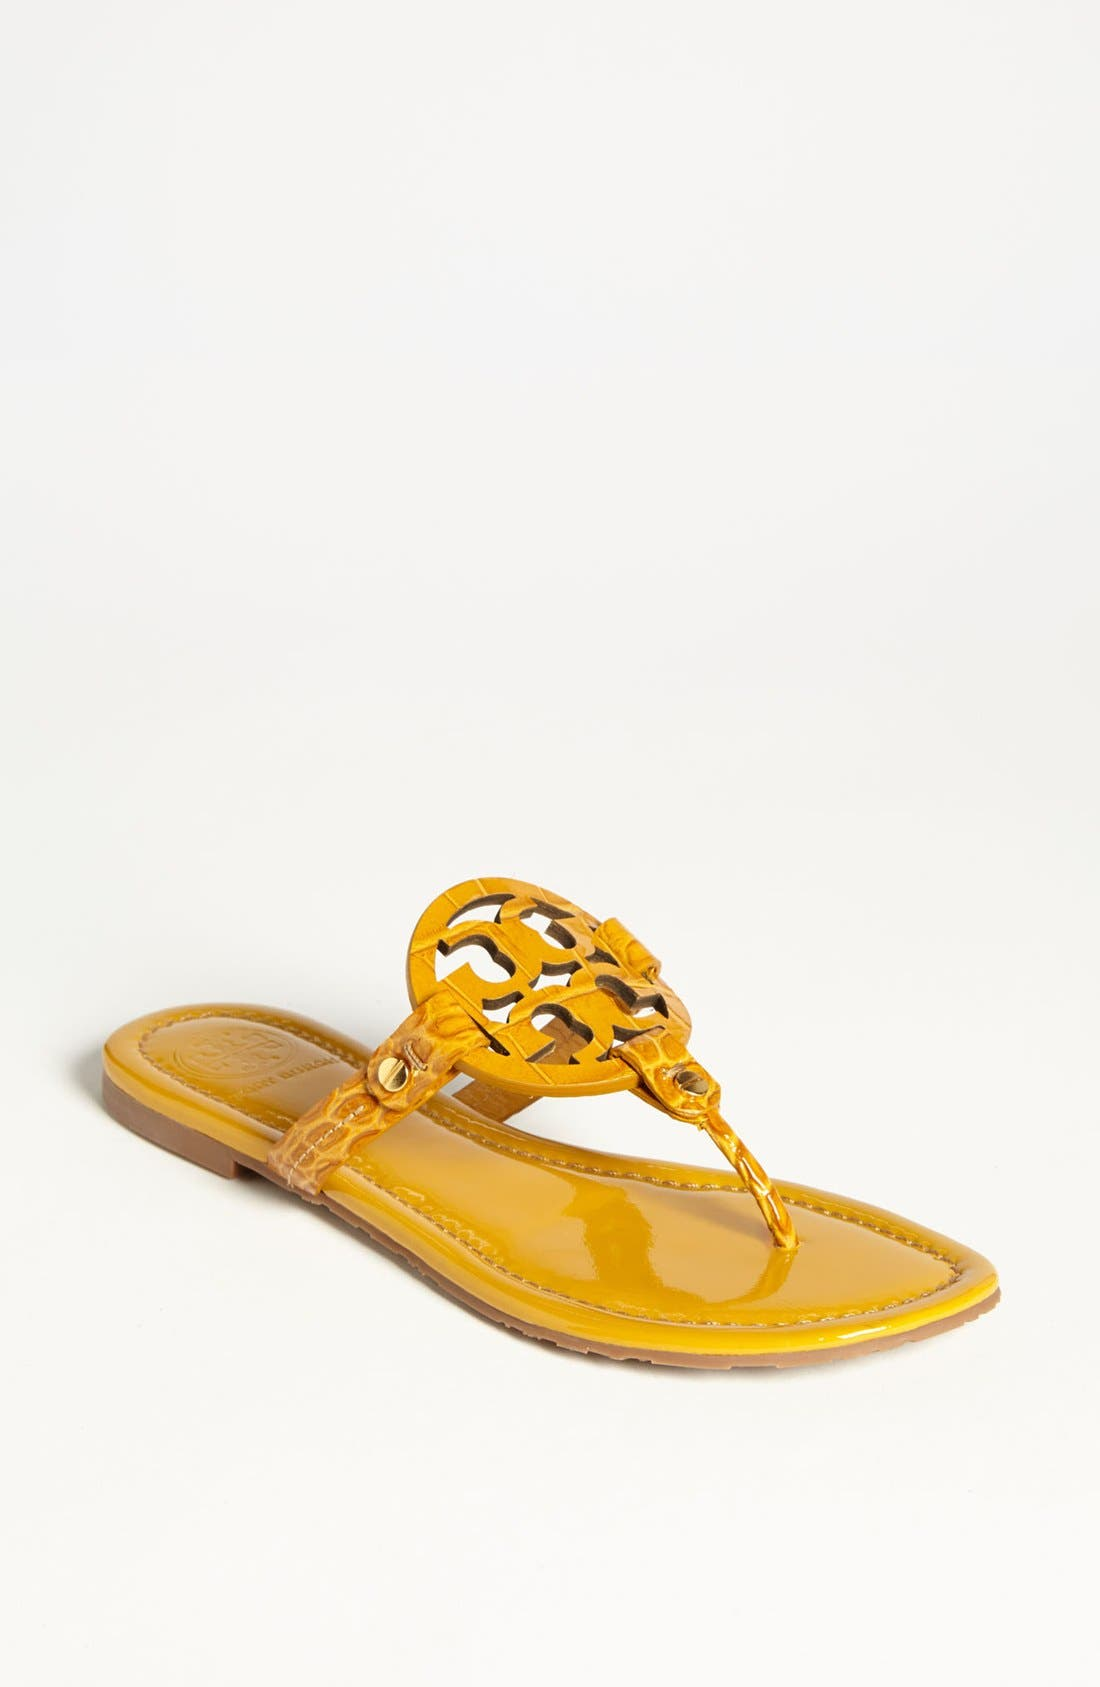 Alternate Image 1 Selected - Tory Burch 'Miller' Croc Embossed Sandal (Online Only)